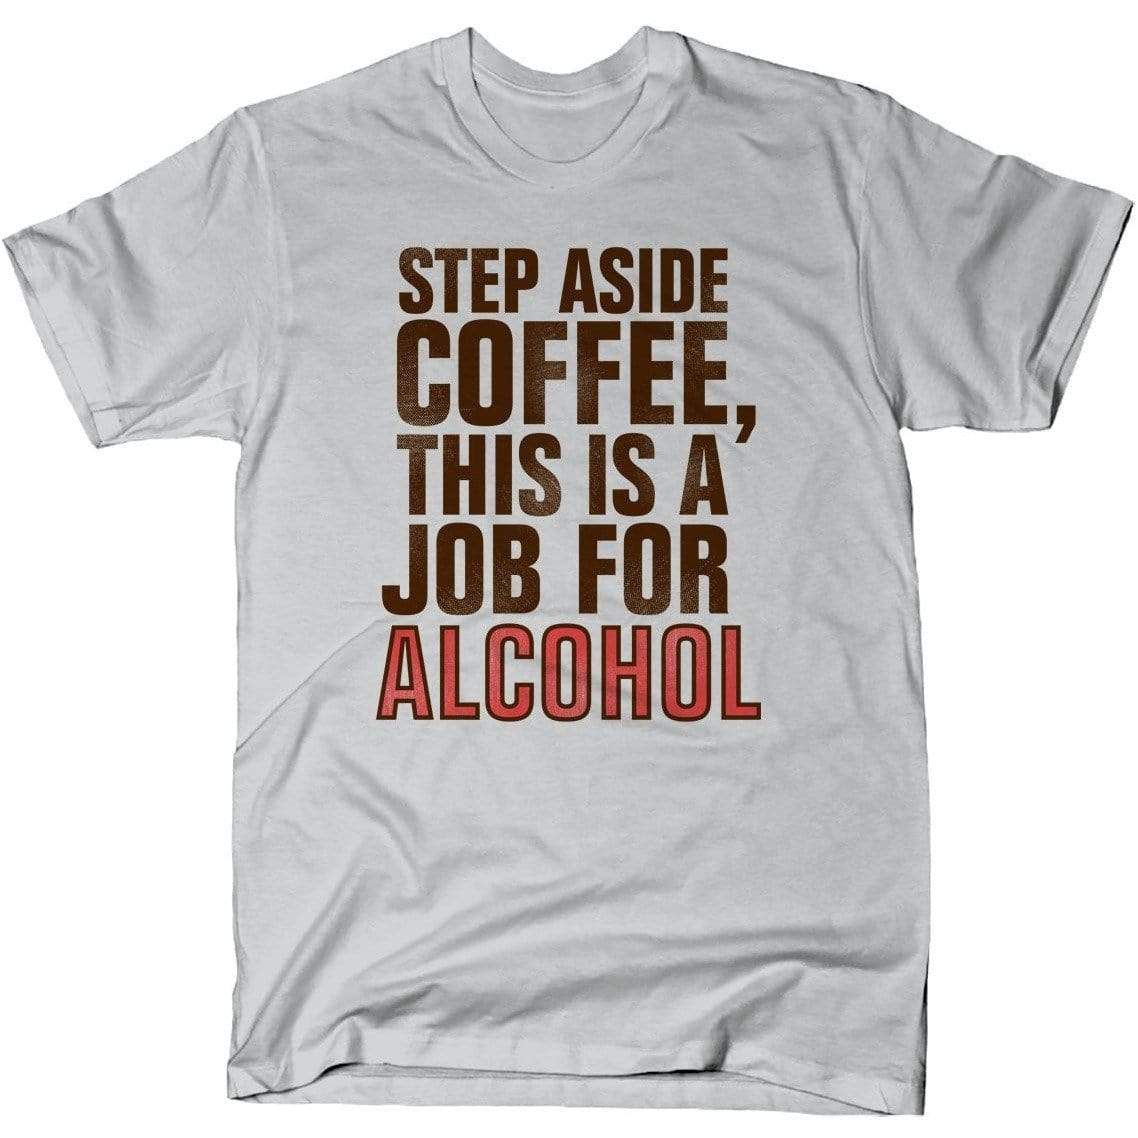 Step Aside Coffee, This Is A Job For Alcohol shirt Snorgtees Clothing/Accessories